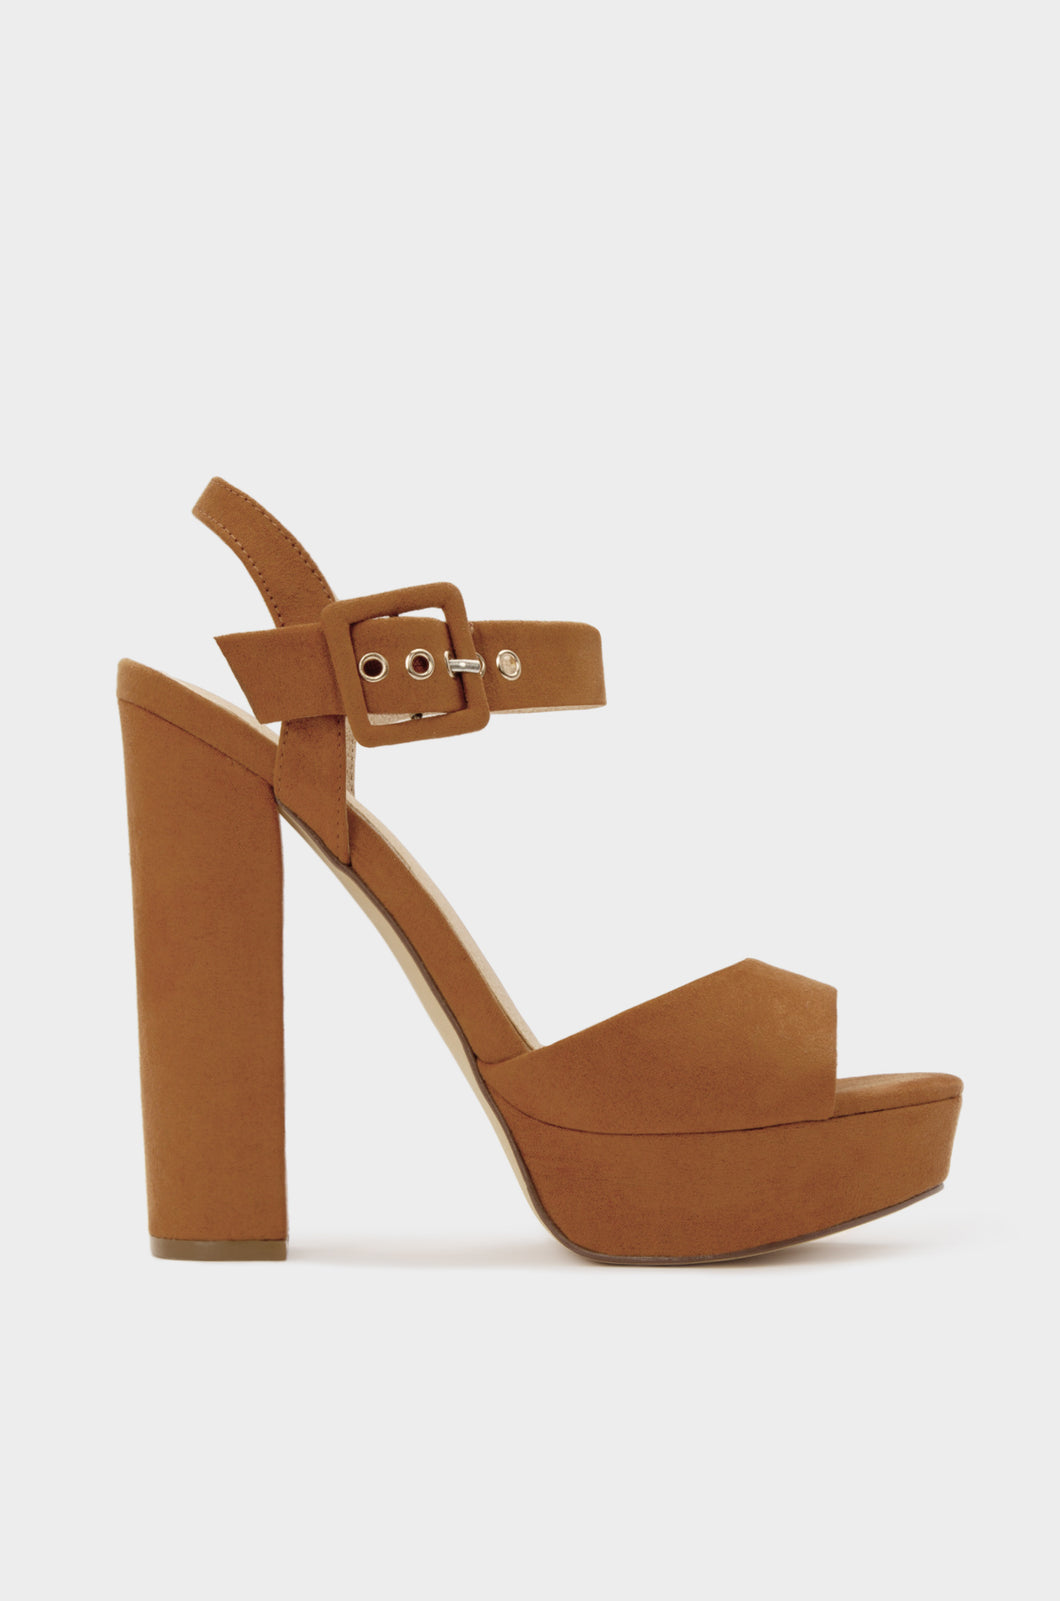 Charmer - Camel Suede